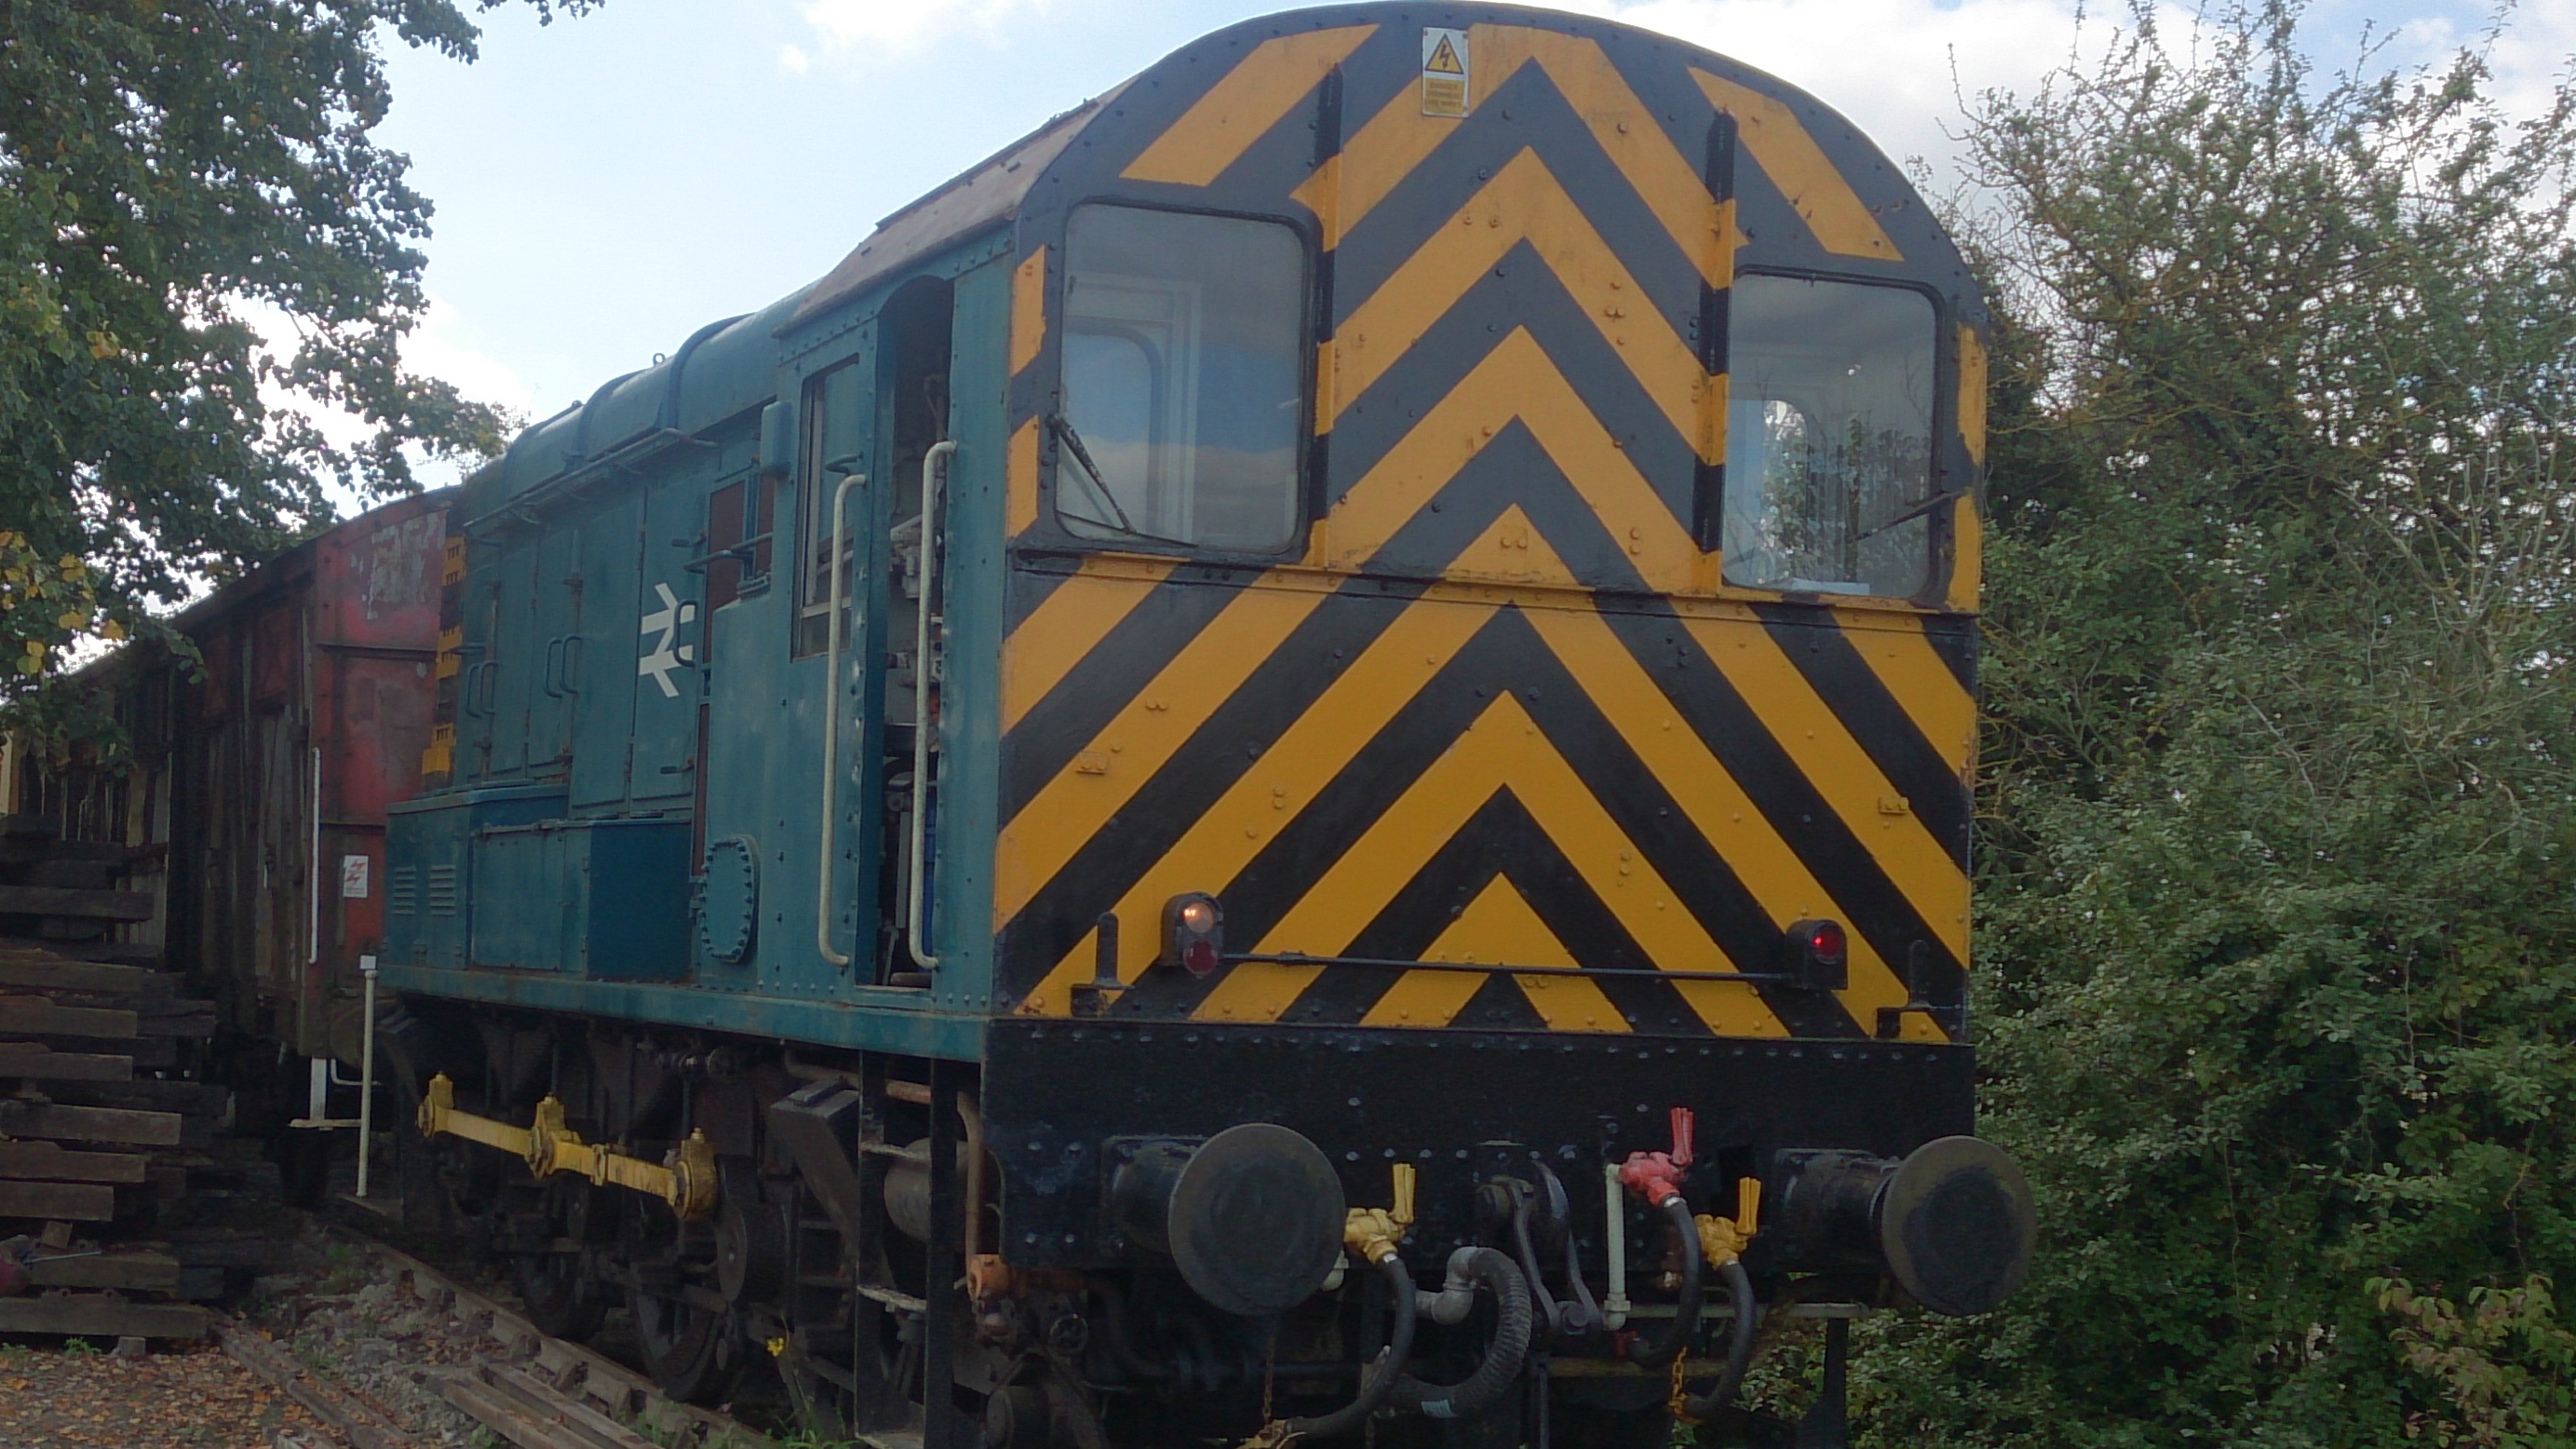 08825 Shunter at Chinnor